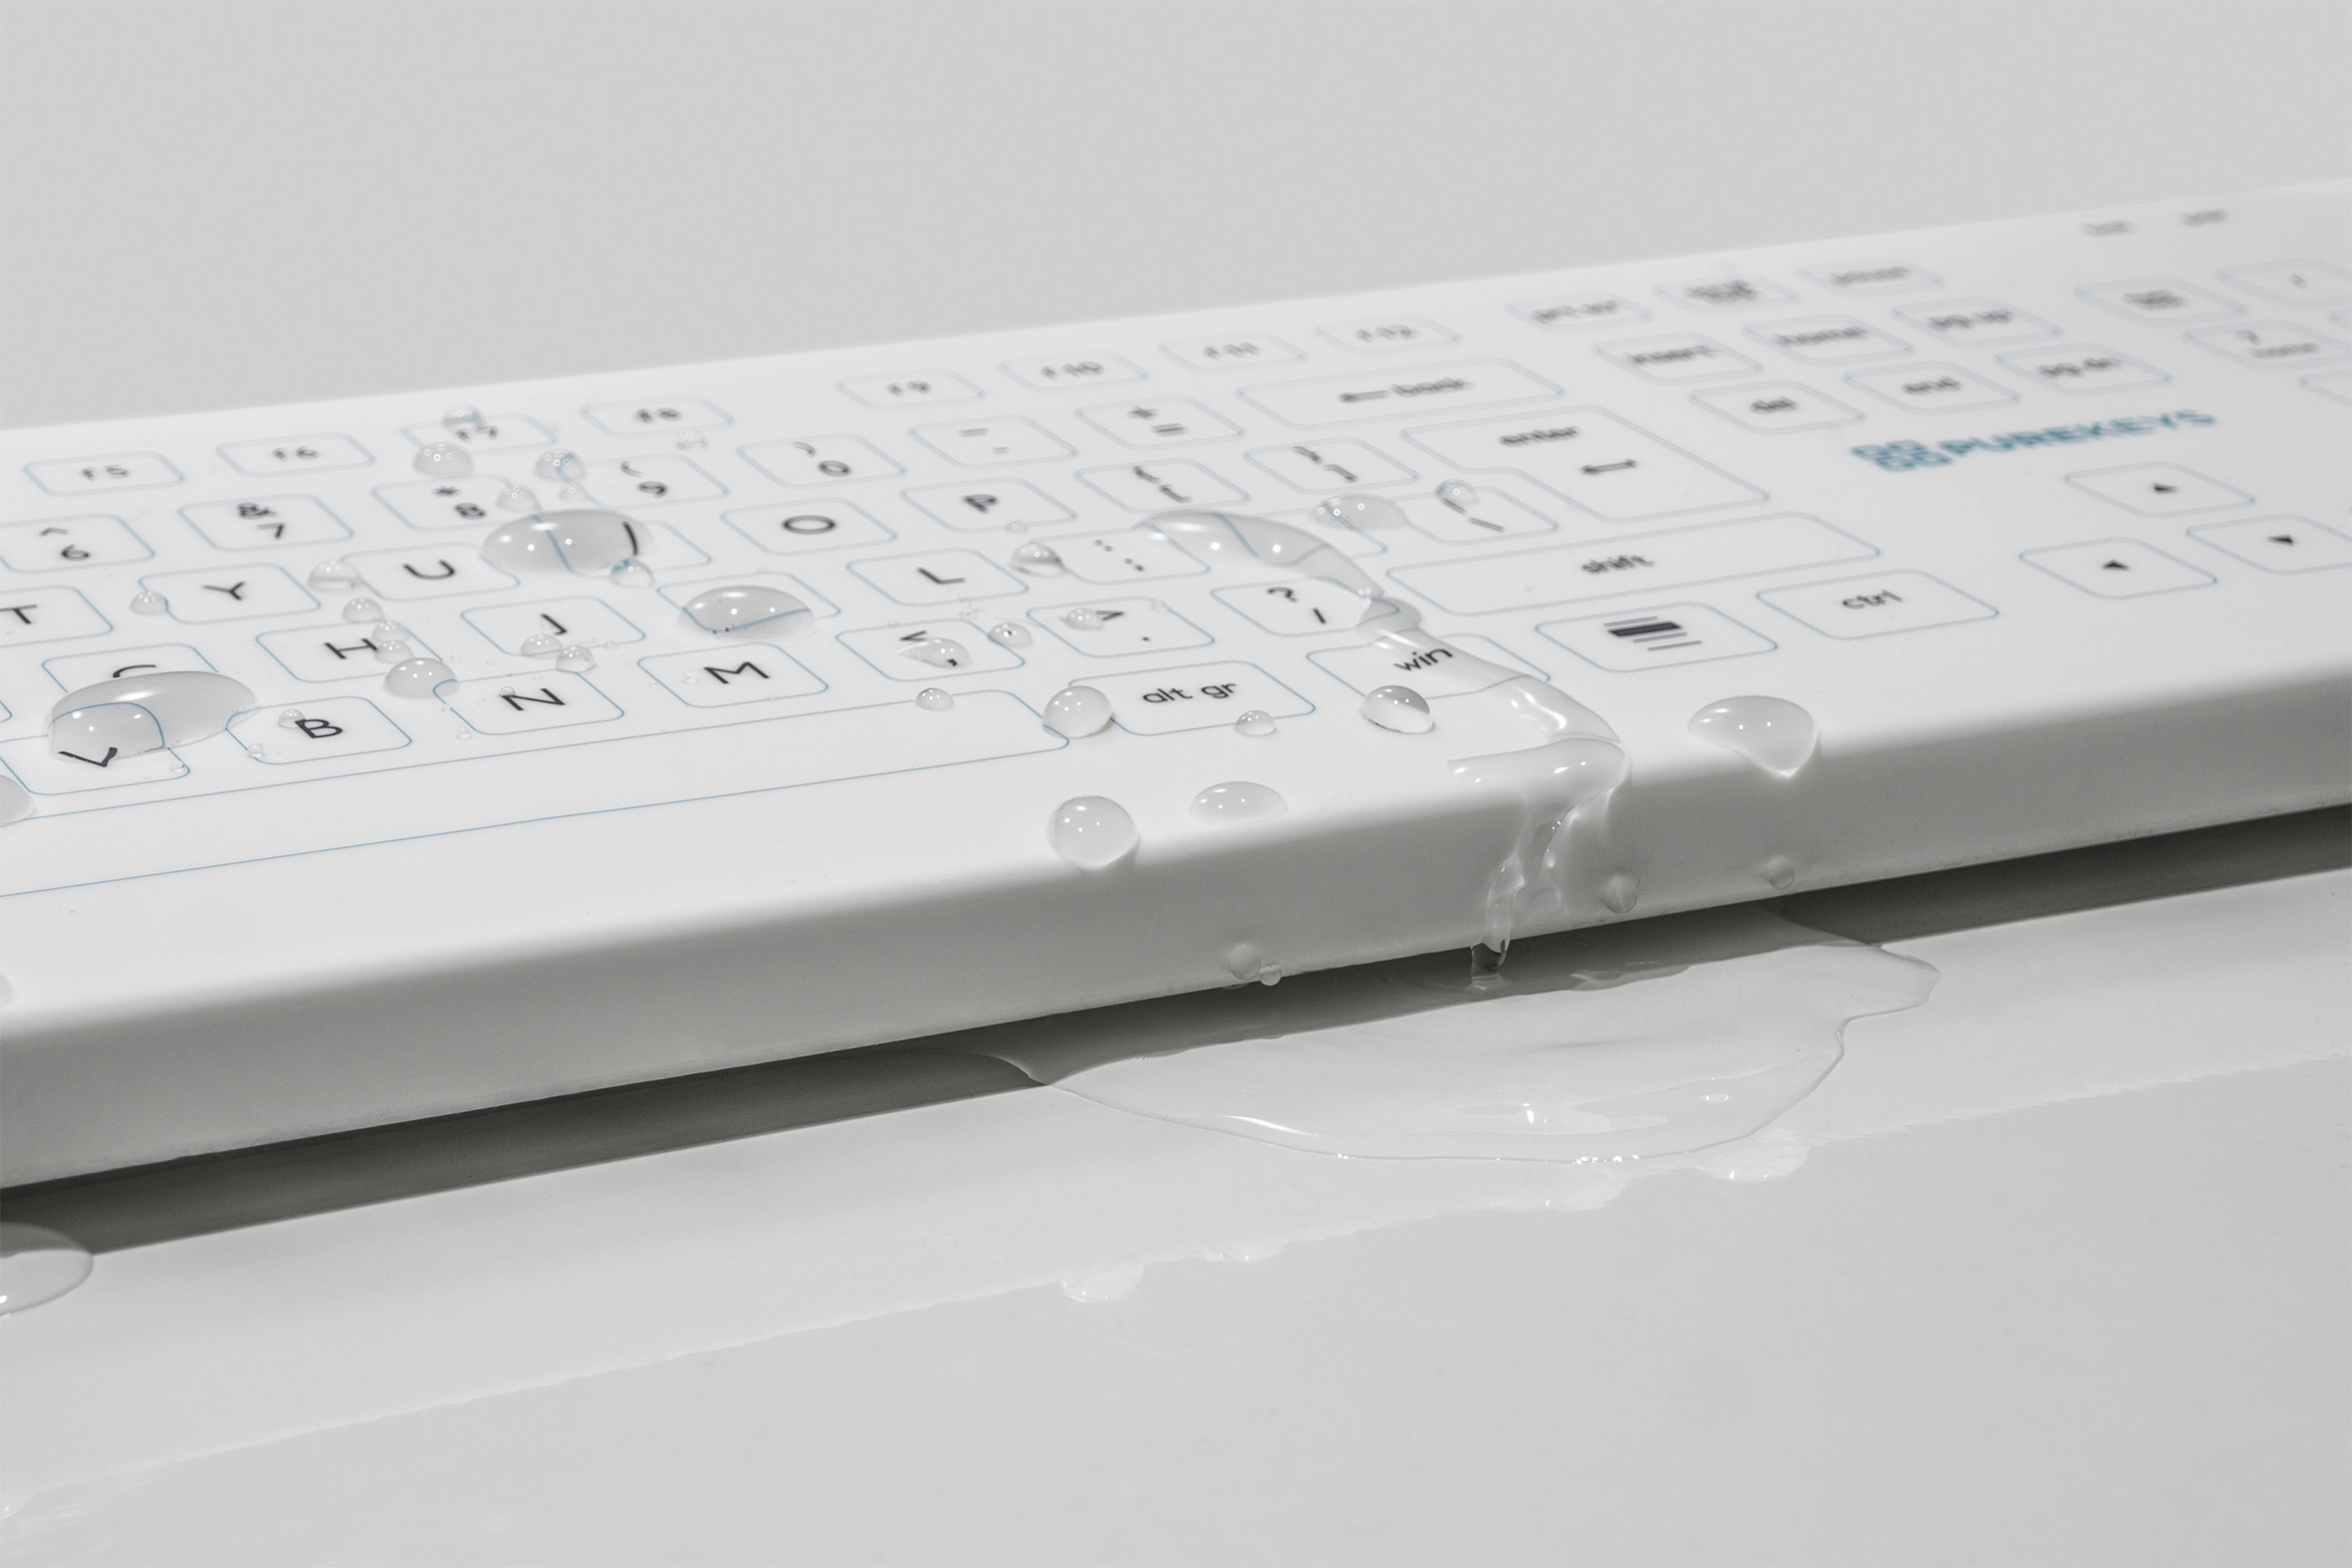 Wireless keyboard with drops